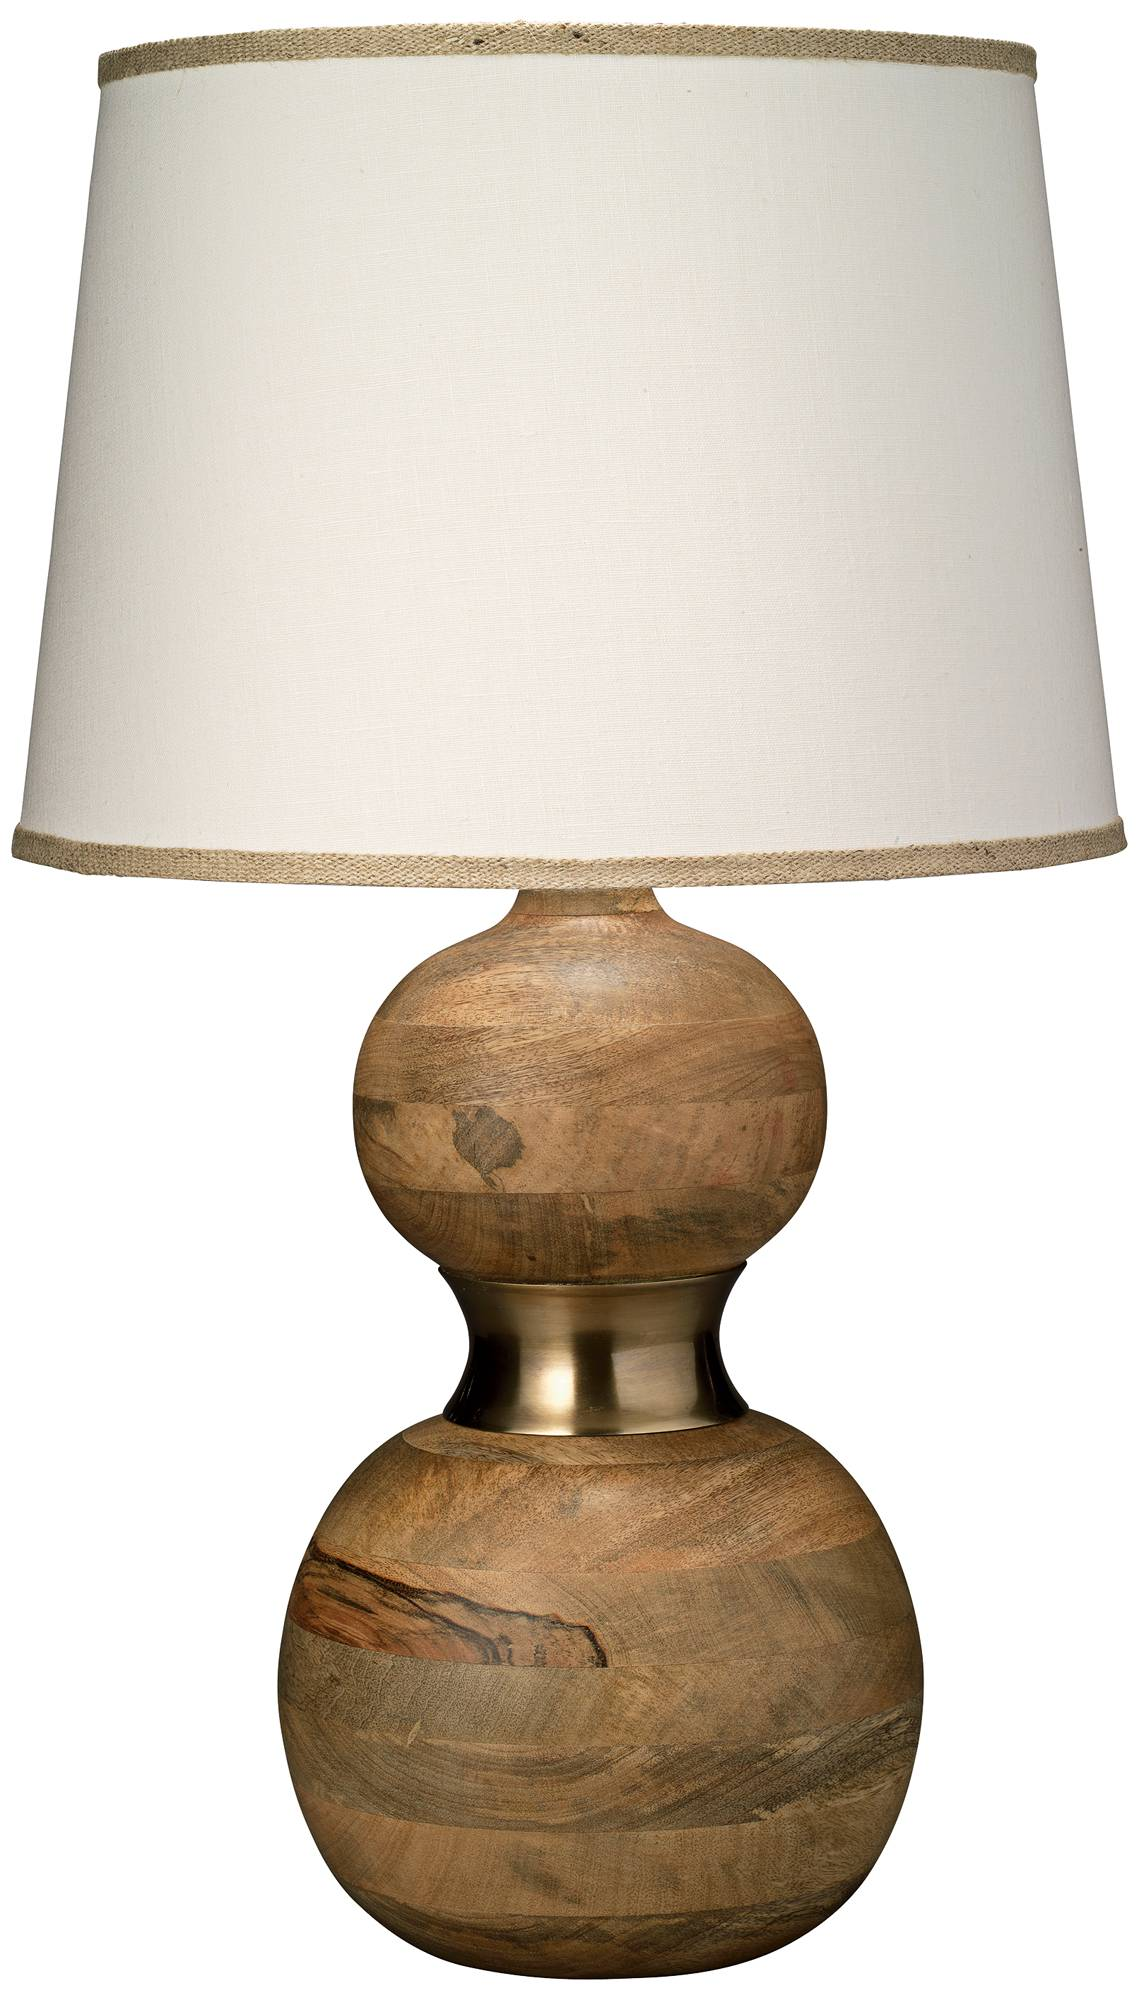 Jamie young bandeau 32 5 high table lamp